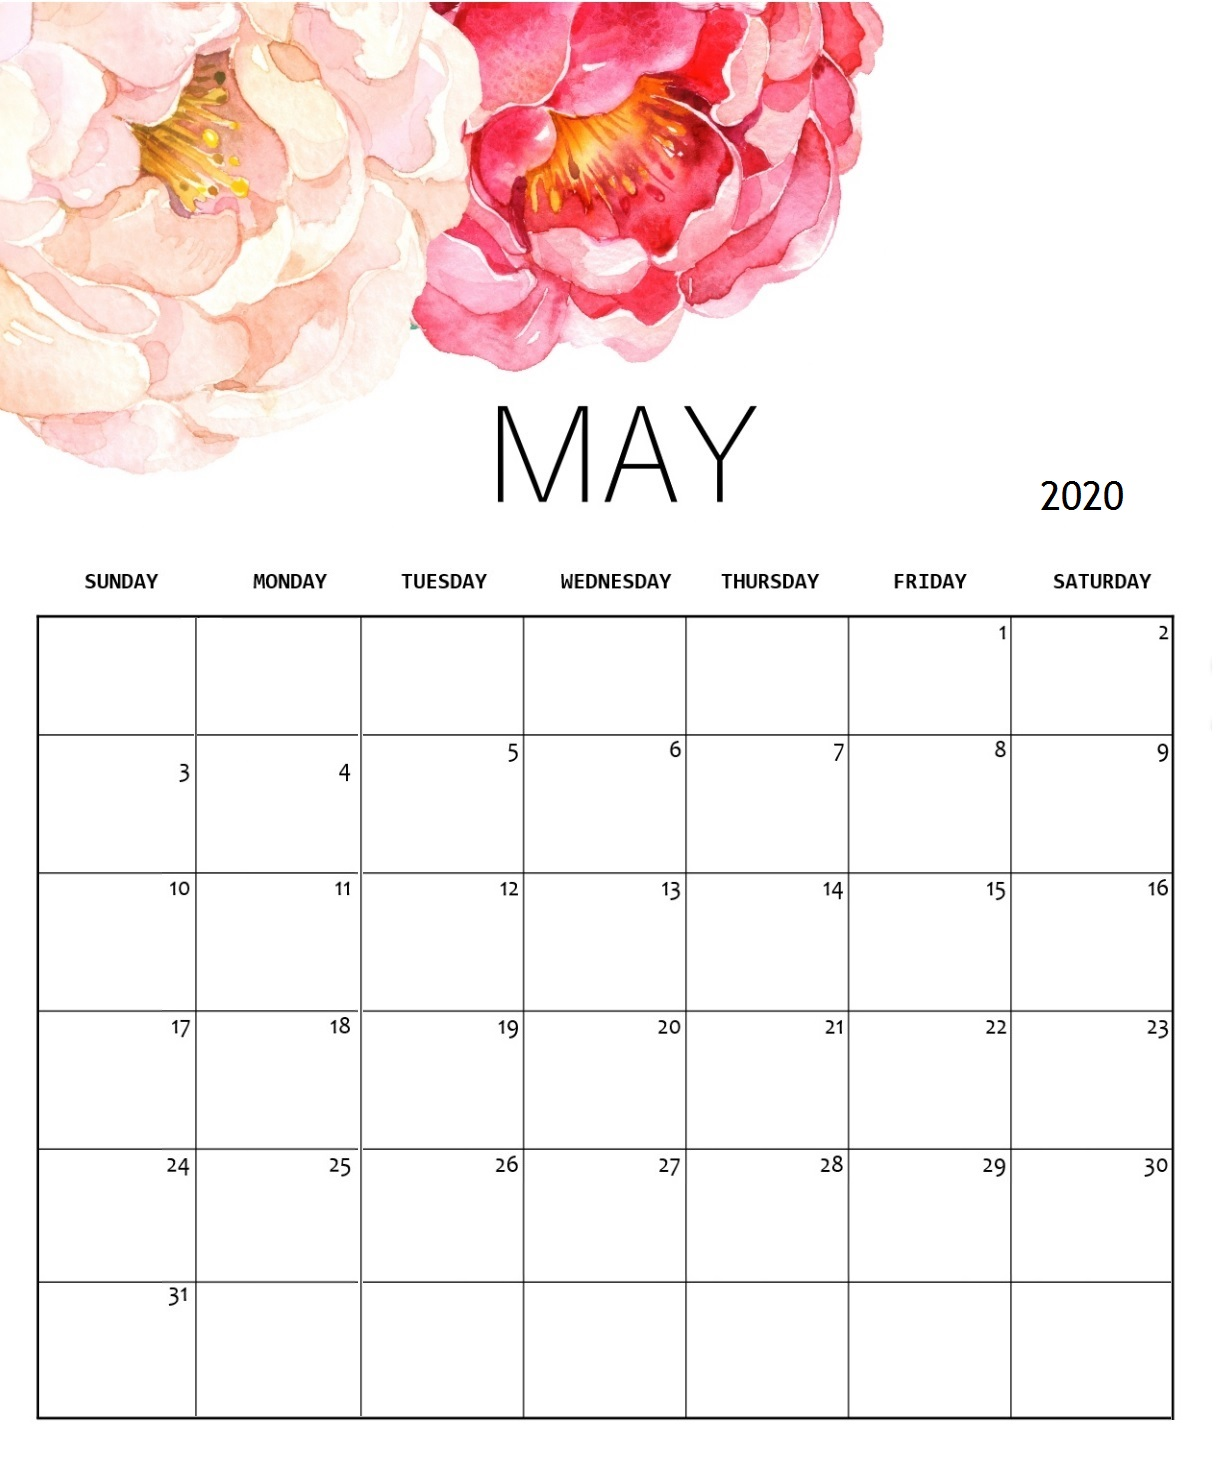 May 2020 Cute Background Calendar